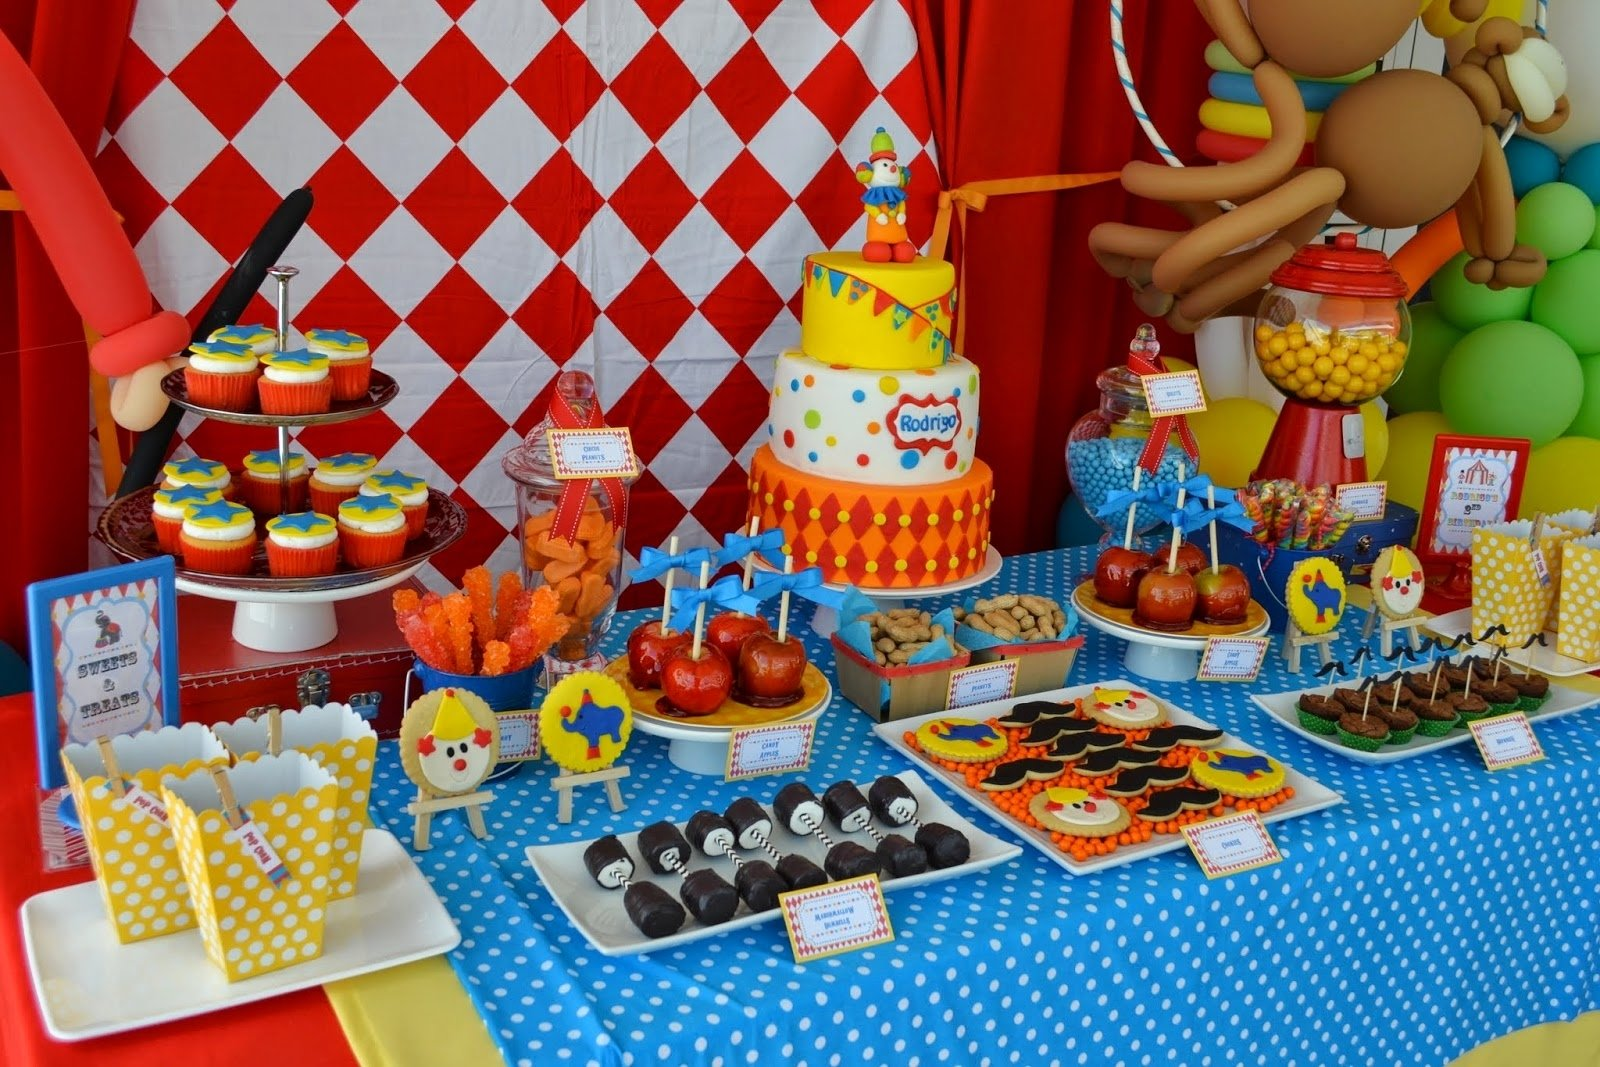 10 Unique 5 Year Old Birthday Party Ideas awesome birthday party ideas for boys 4 2020